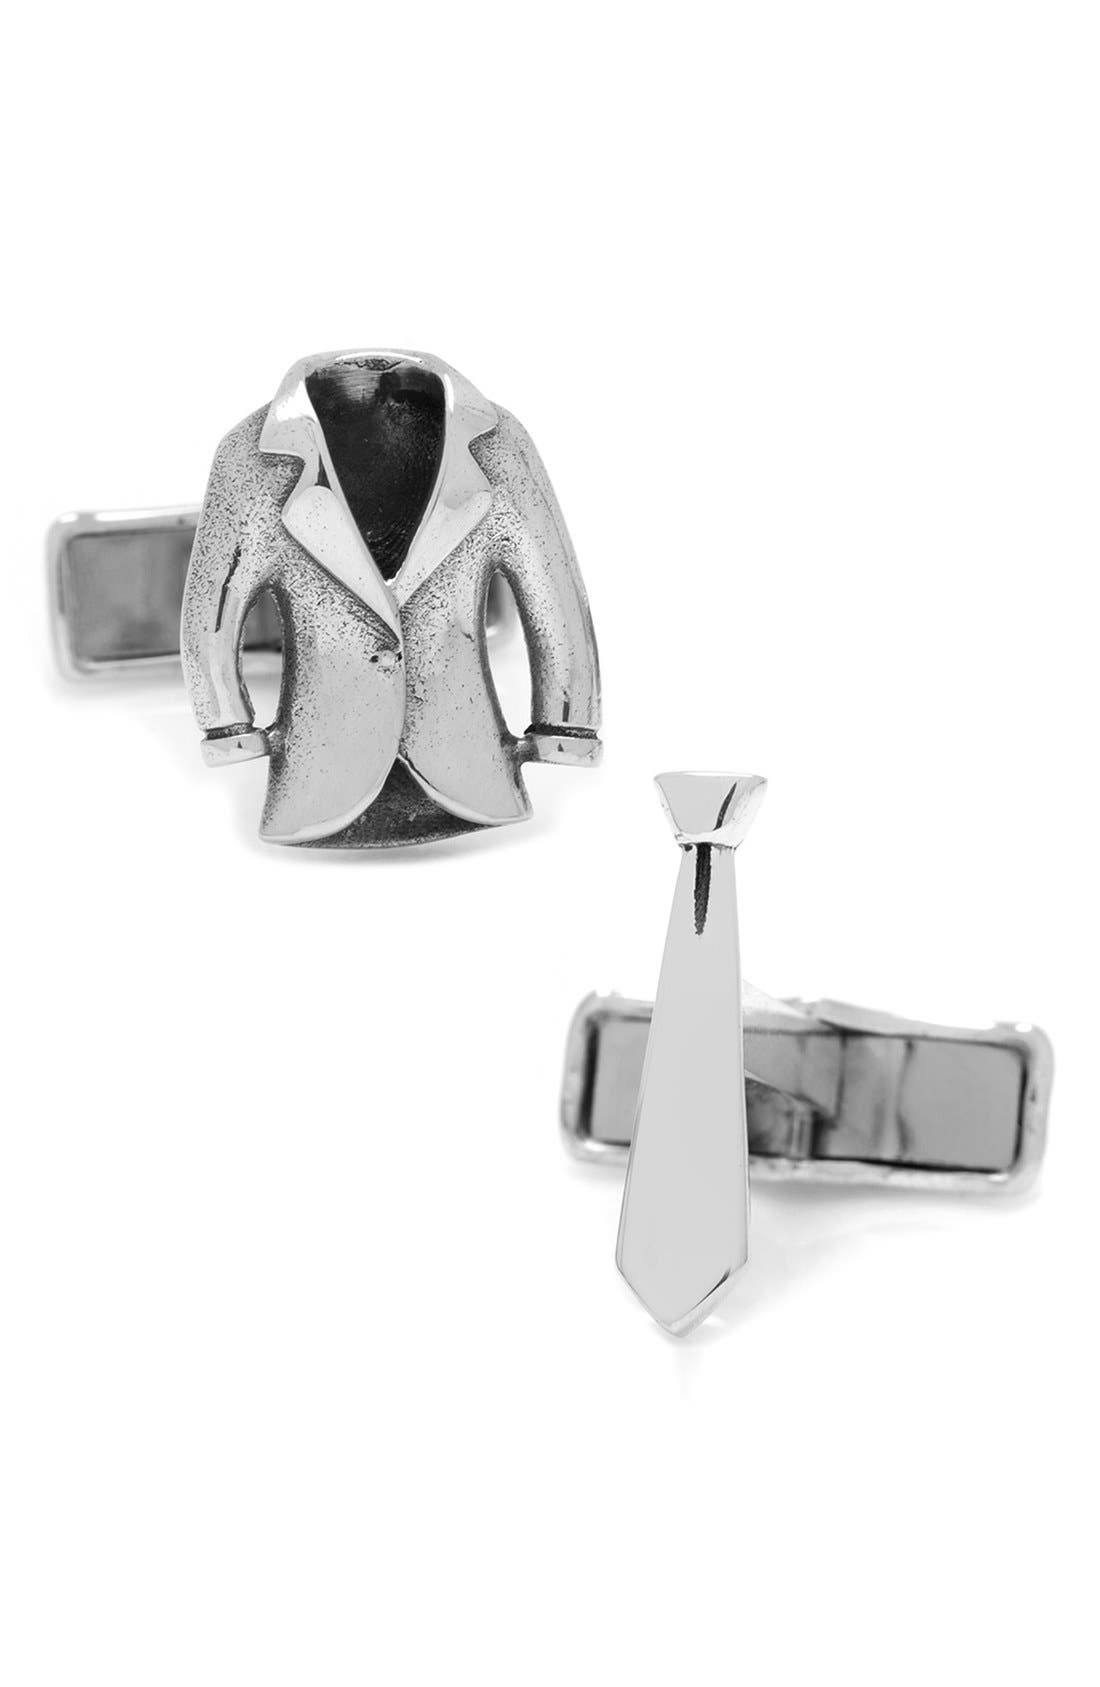 Alternate Image 1 Selected - Ox and Bull Trading Co. Suit & Tie Cuff Links